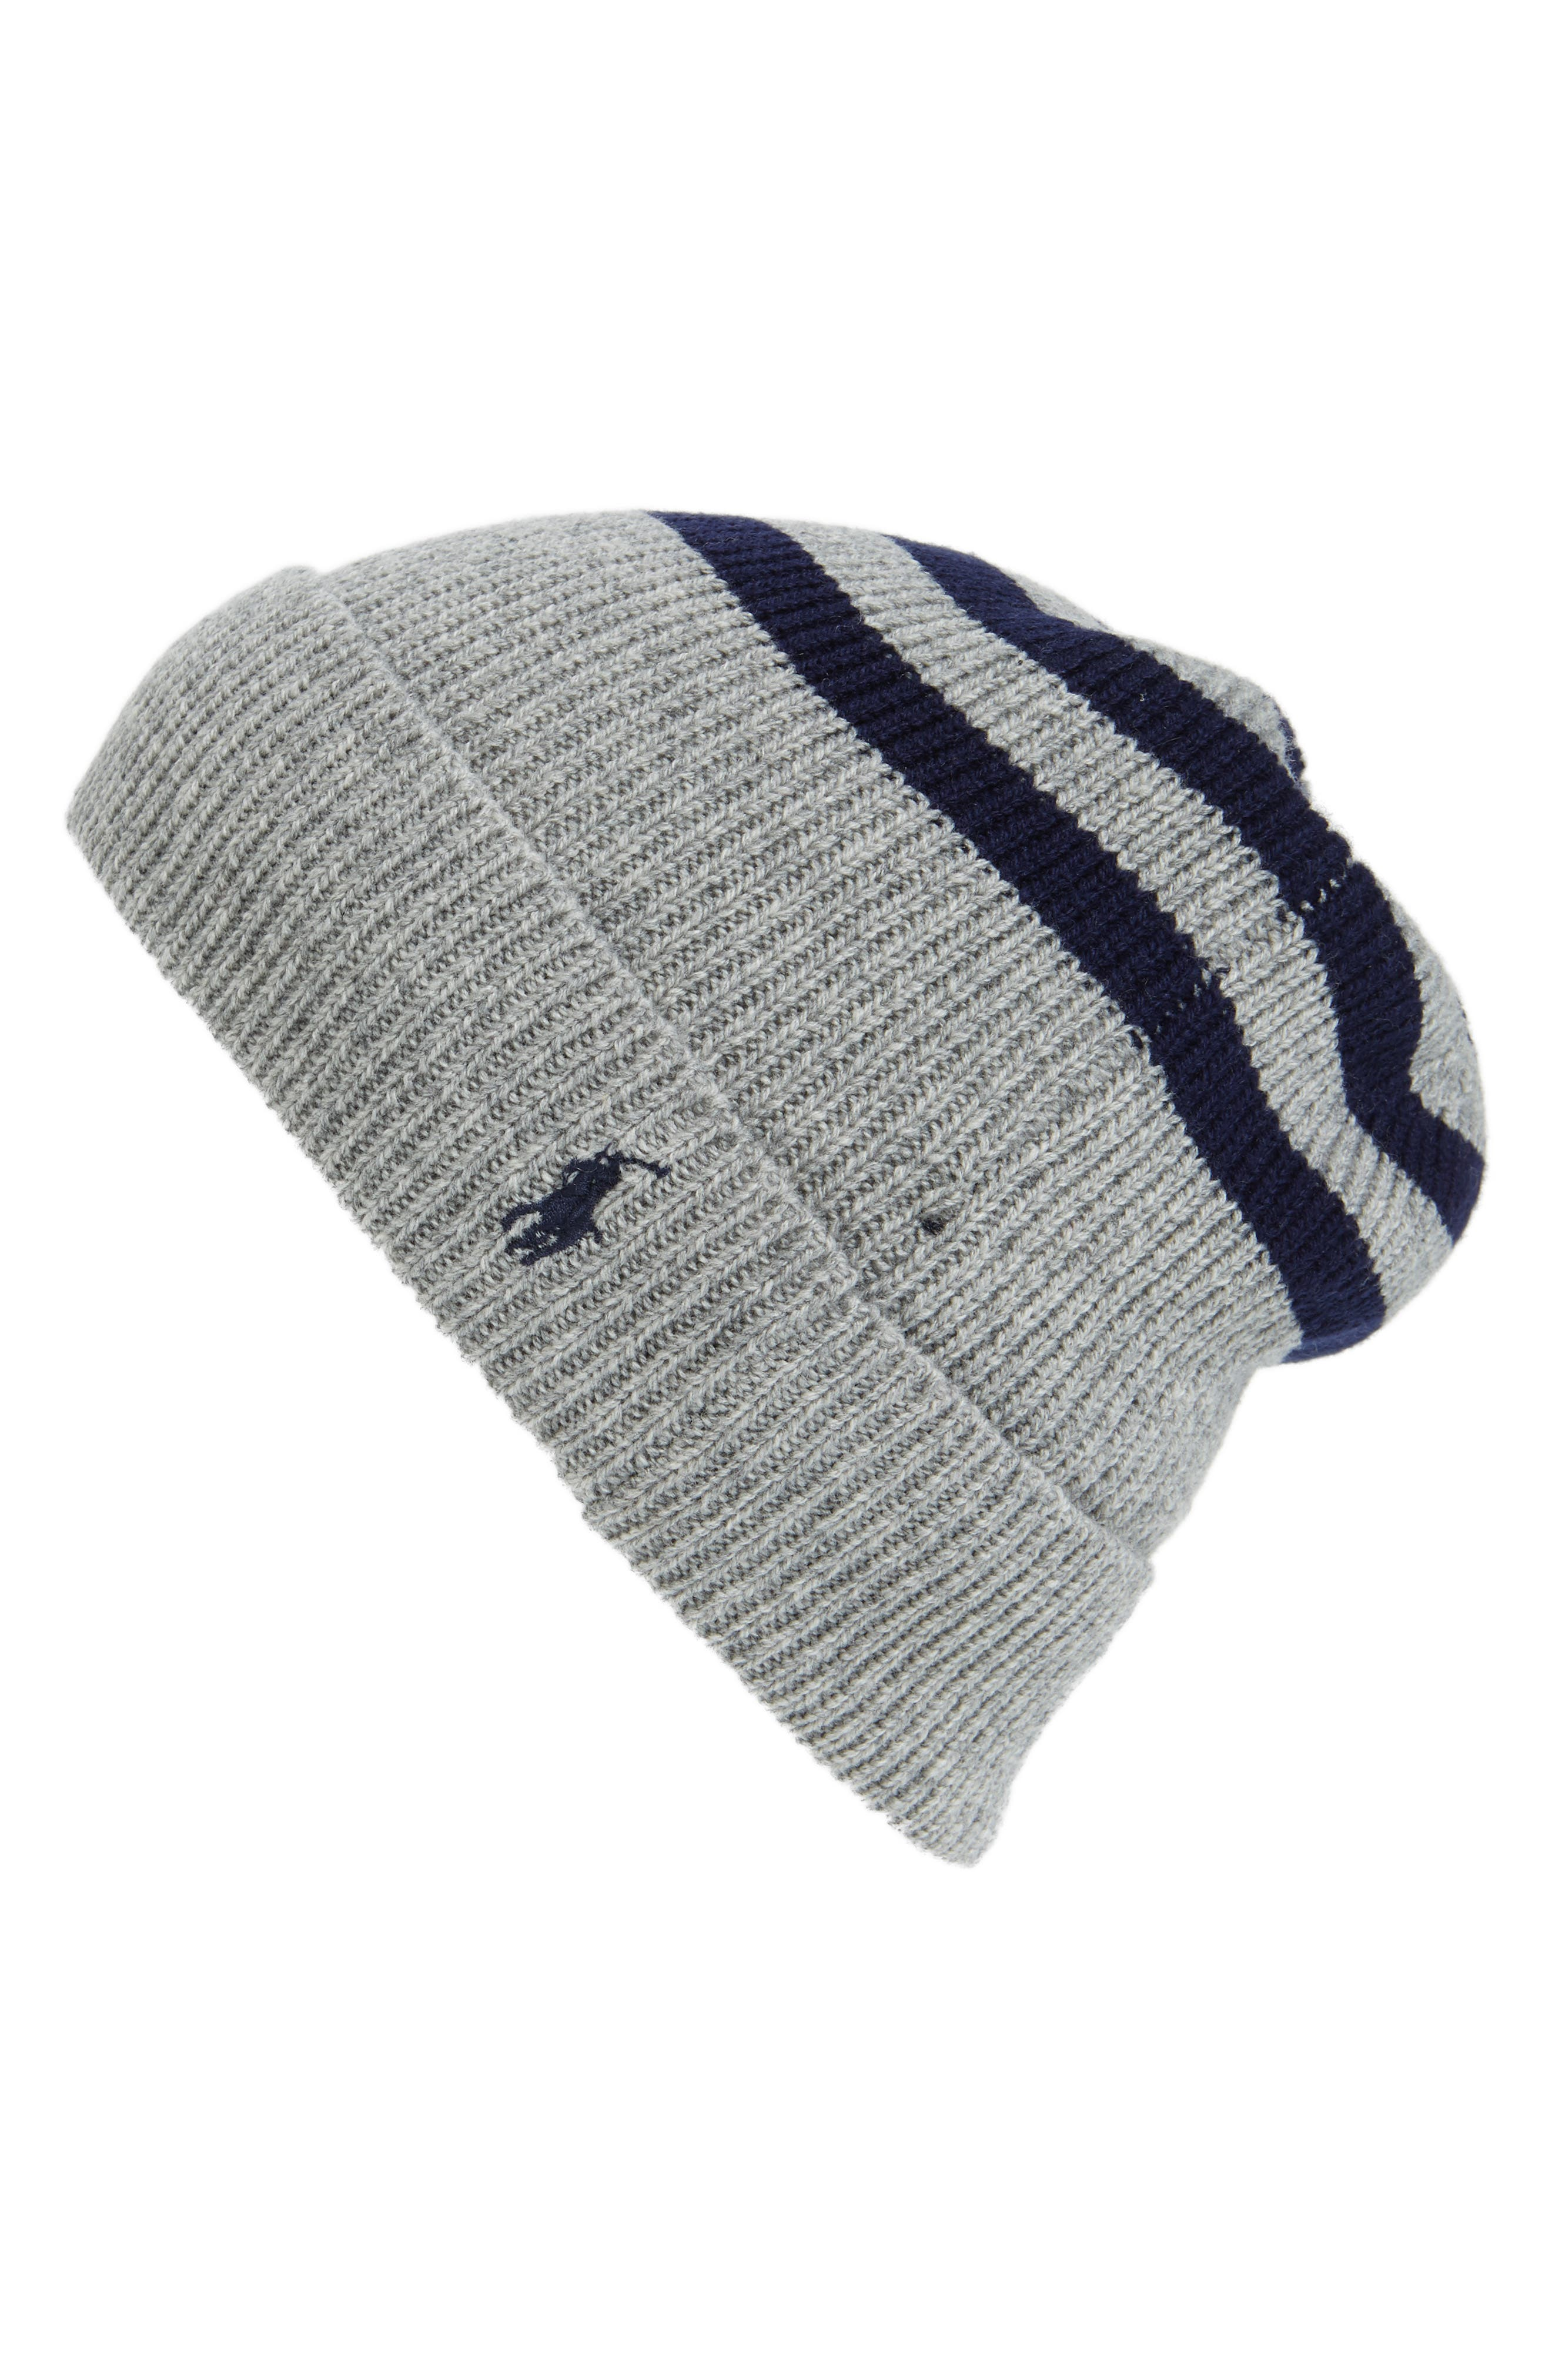 Alternate Image 1 Selected - Polo Ralph Lauren Rugby Stripe Beanie